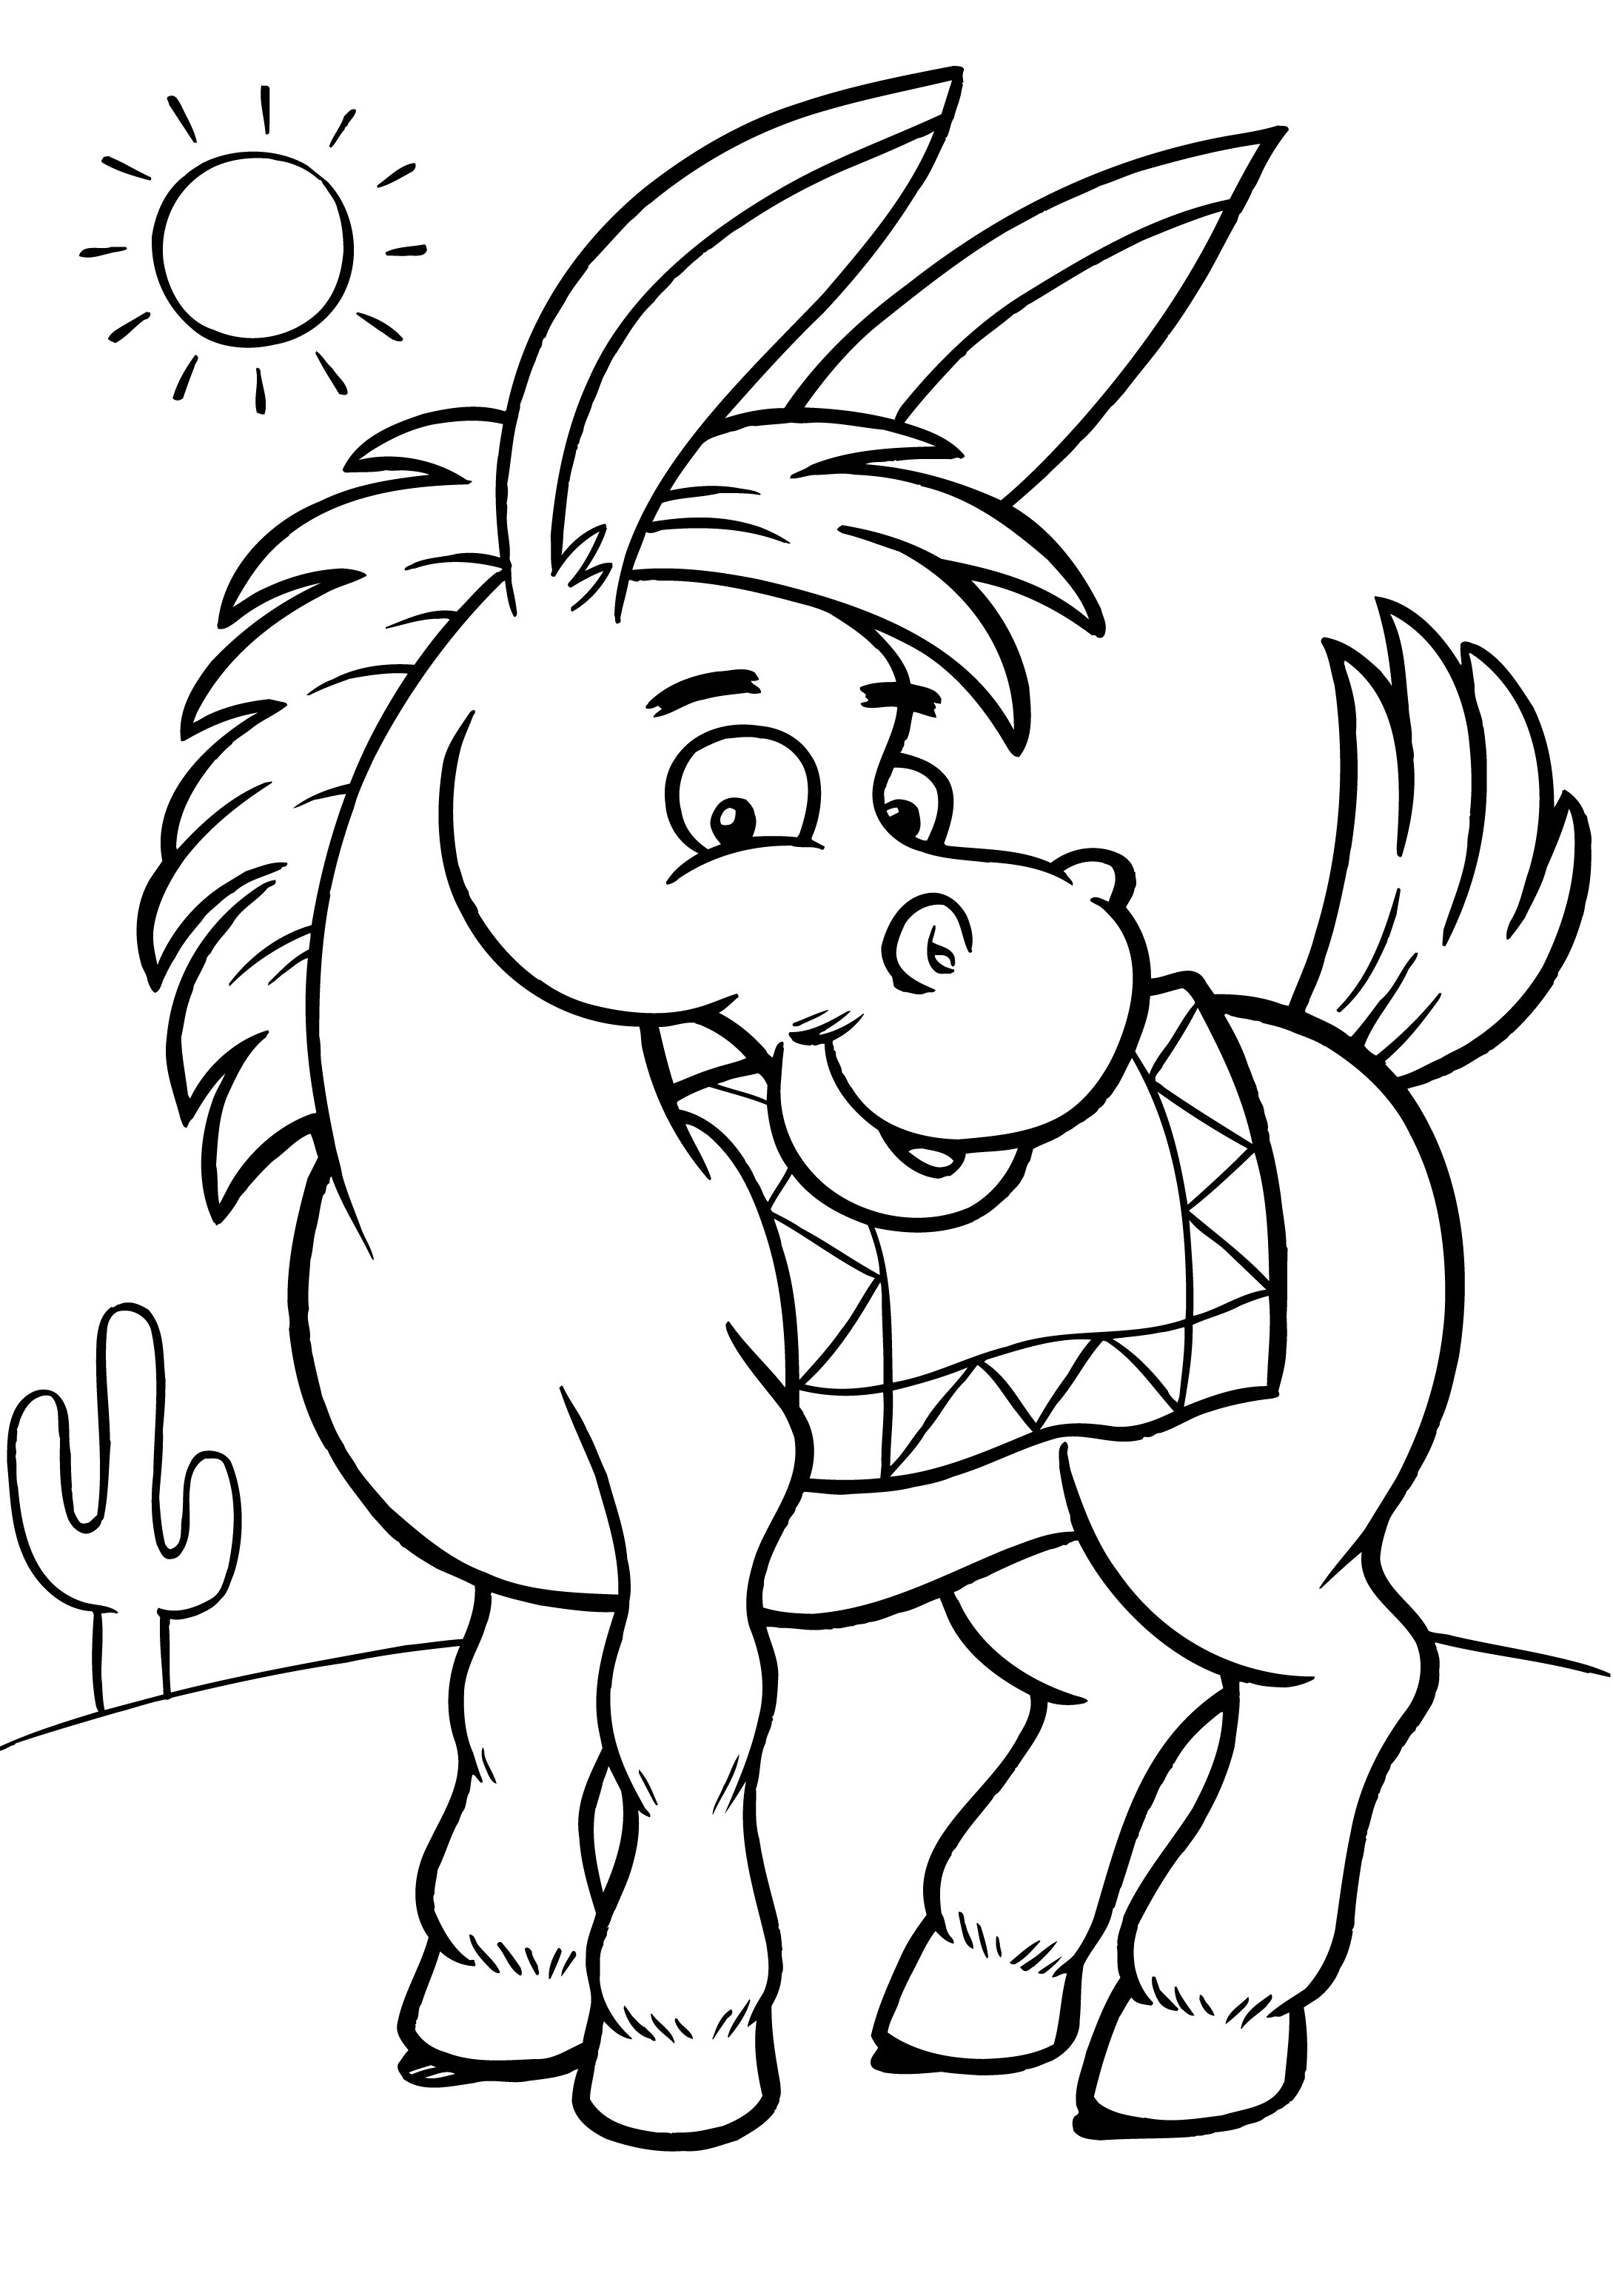 free coloring pages for kids 33 free disney coloring pages for kids baps for kids pages free coloring